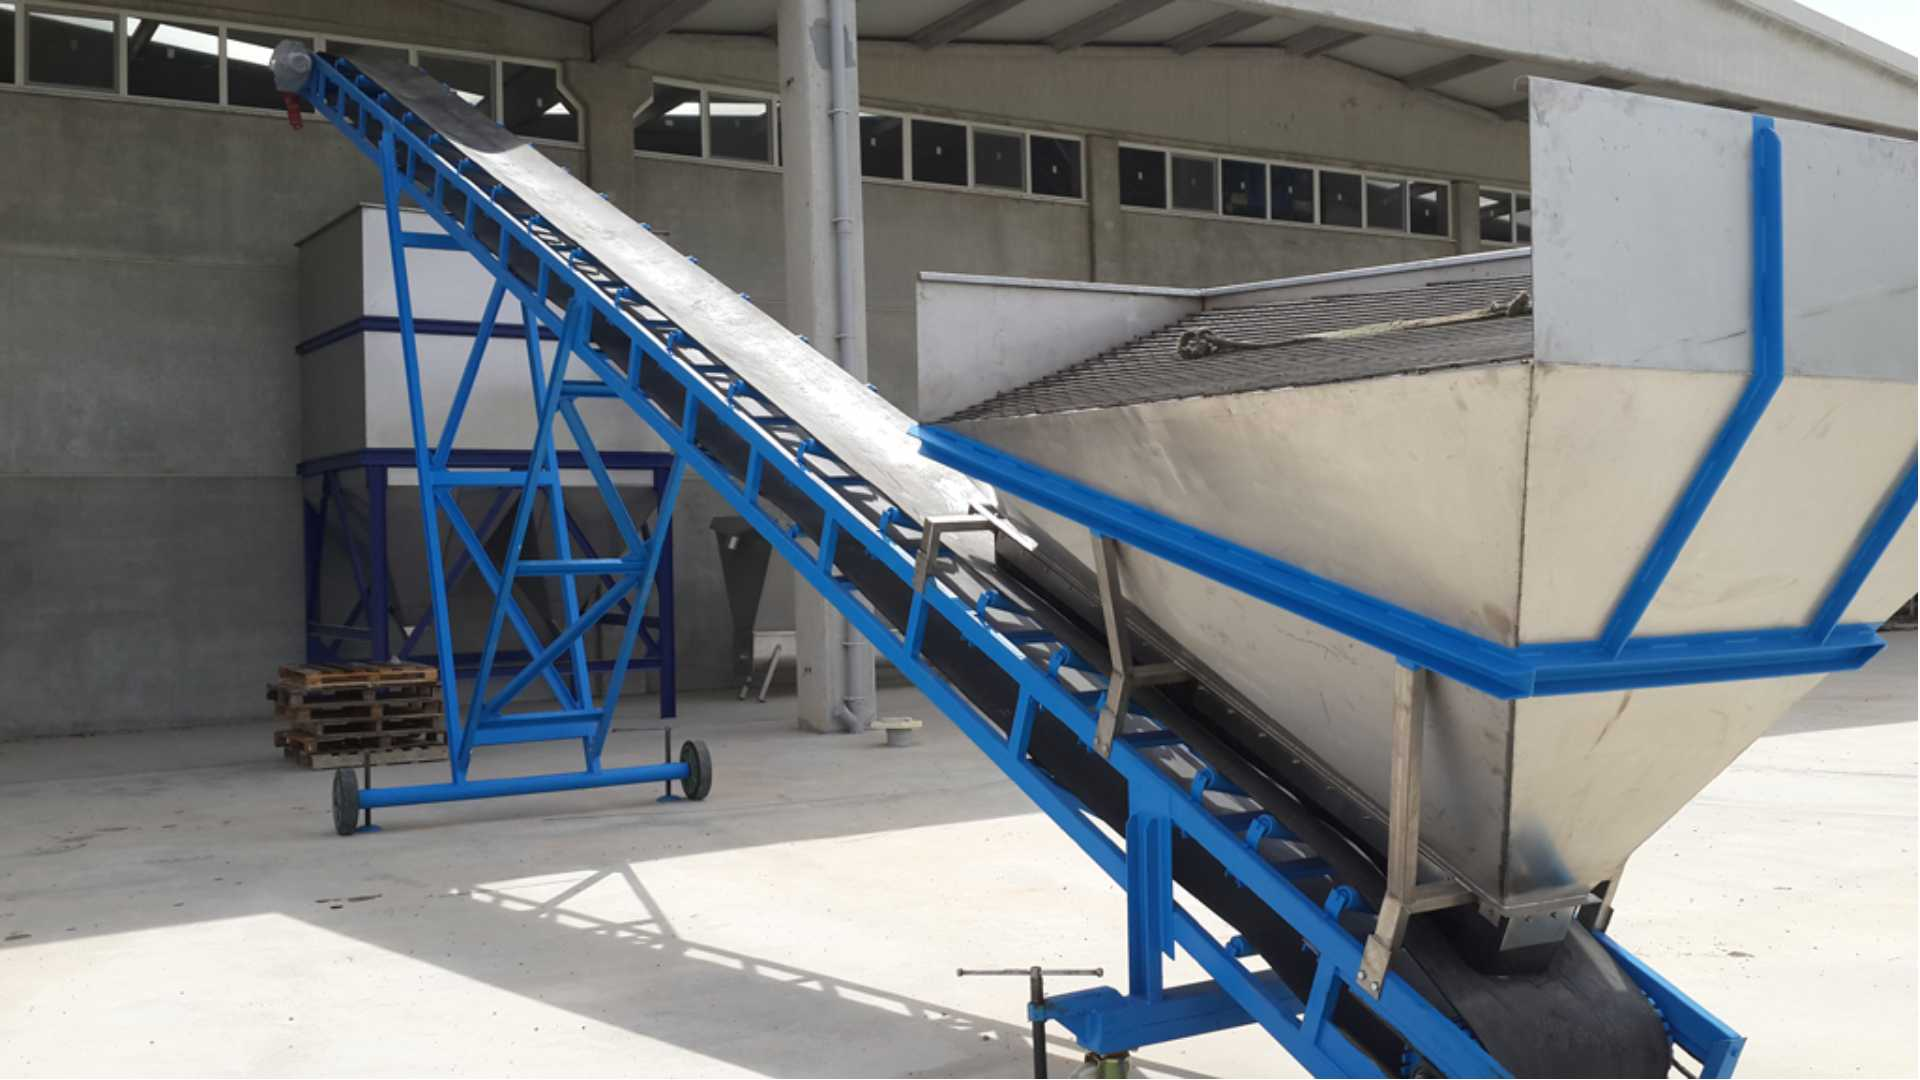 Salt Washing Conveyor Band Photo